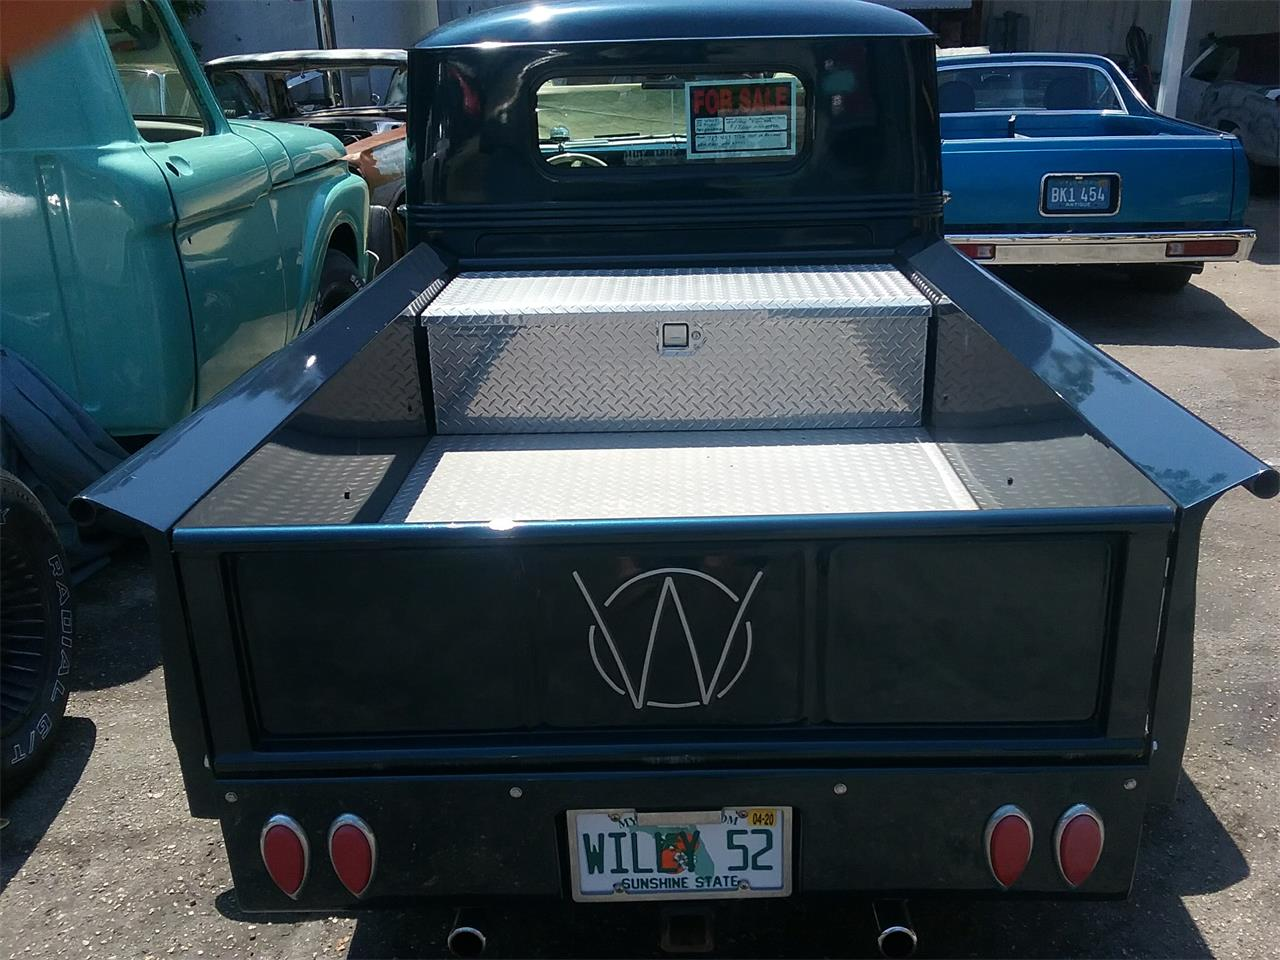 1952 Willys Pickup for sale in St. Petersburg, FL – photo 8